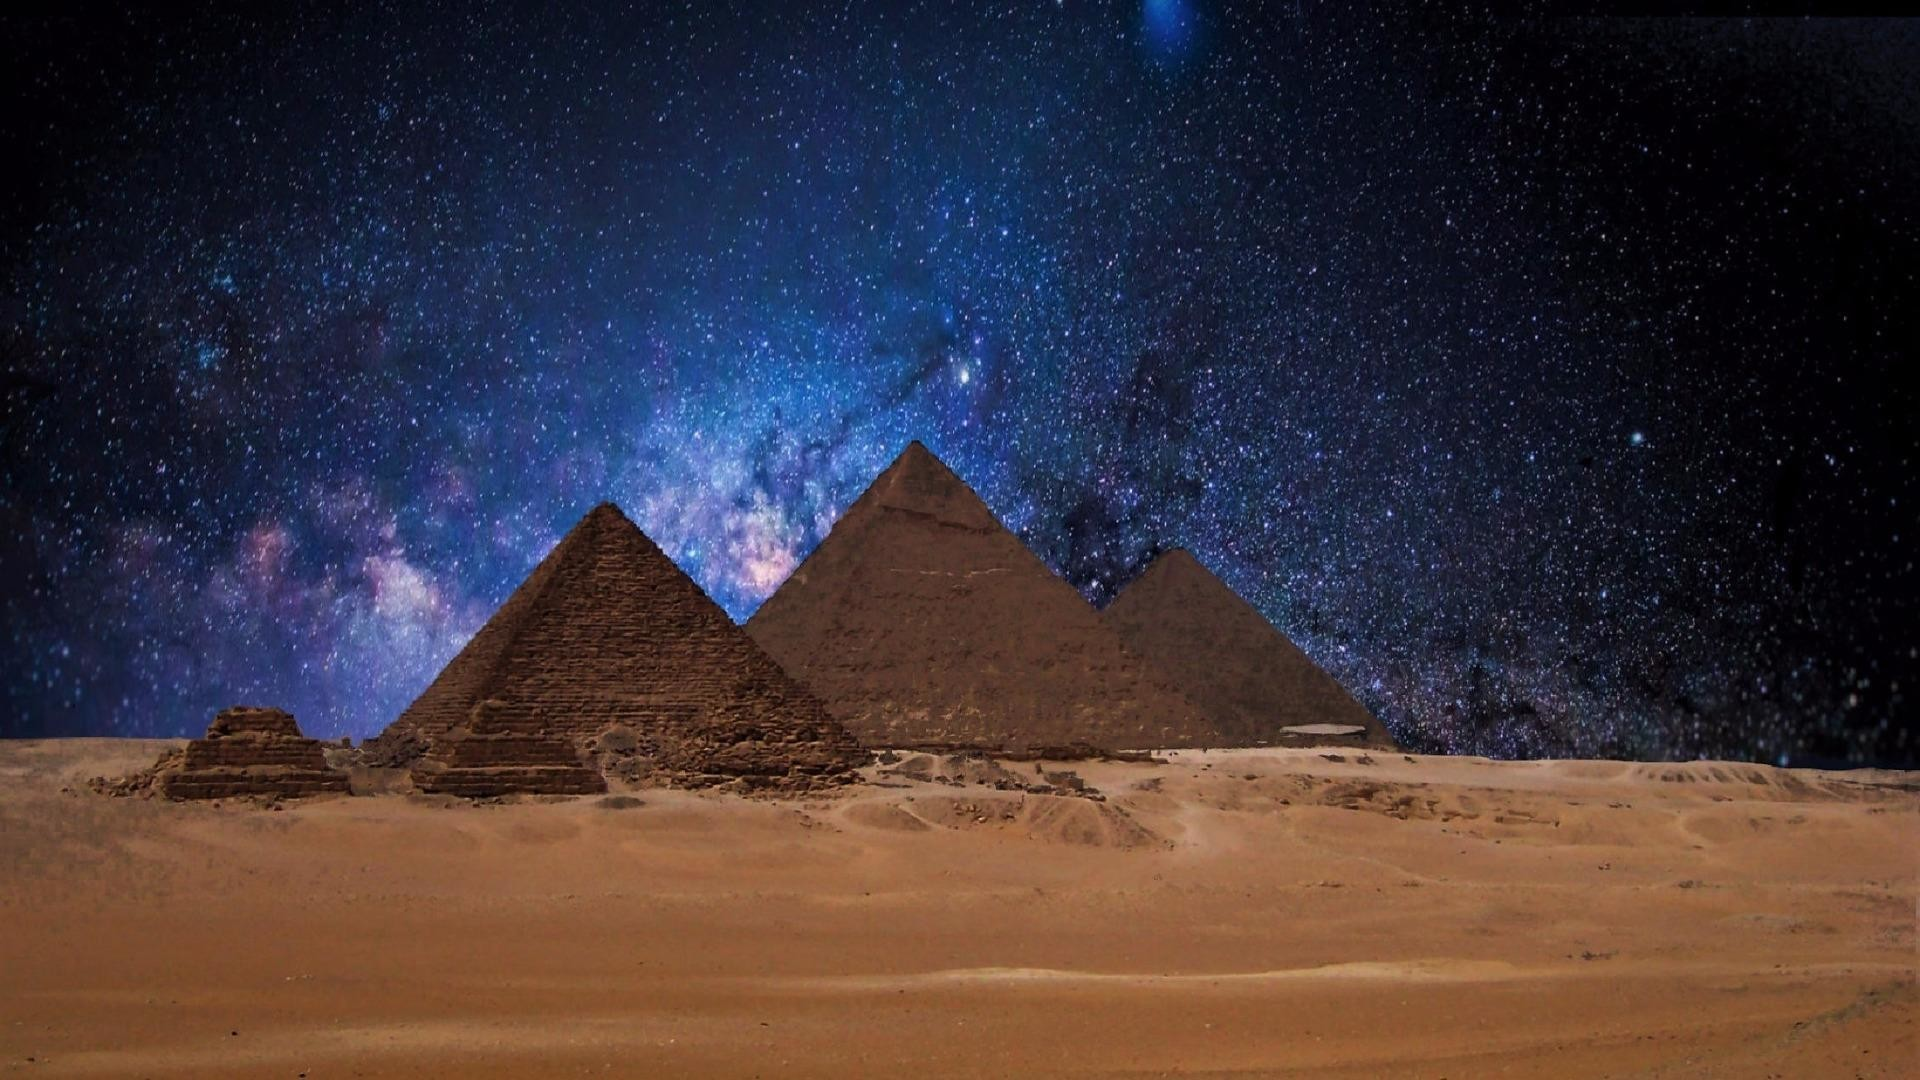 Pyramids Of Egypt Wallpaper 68 Images